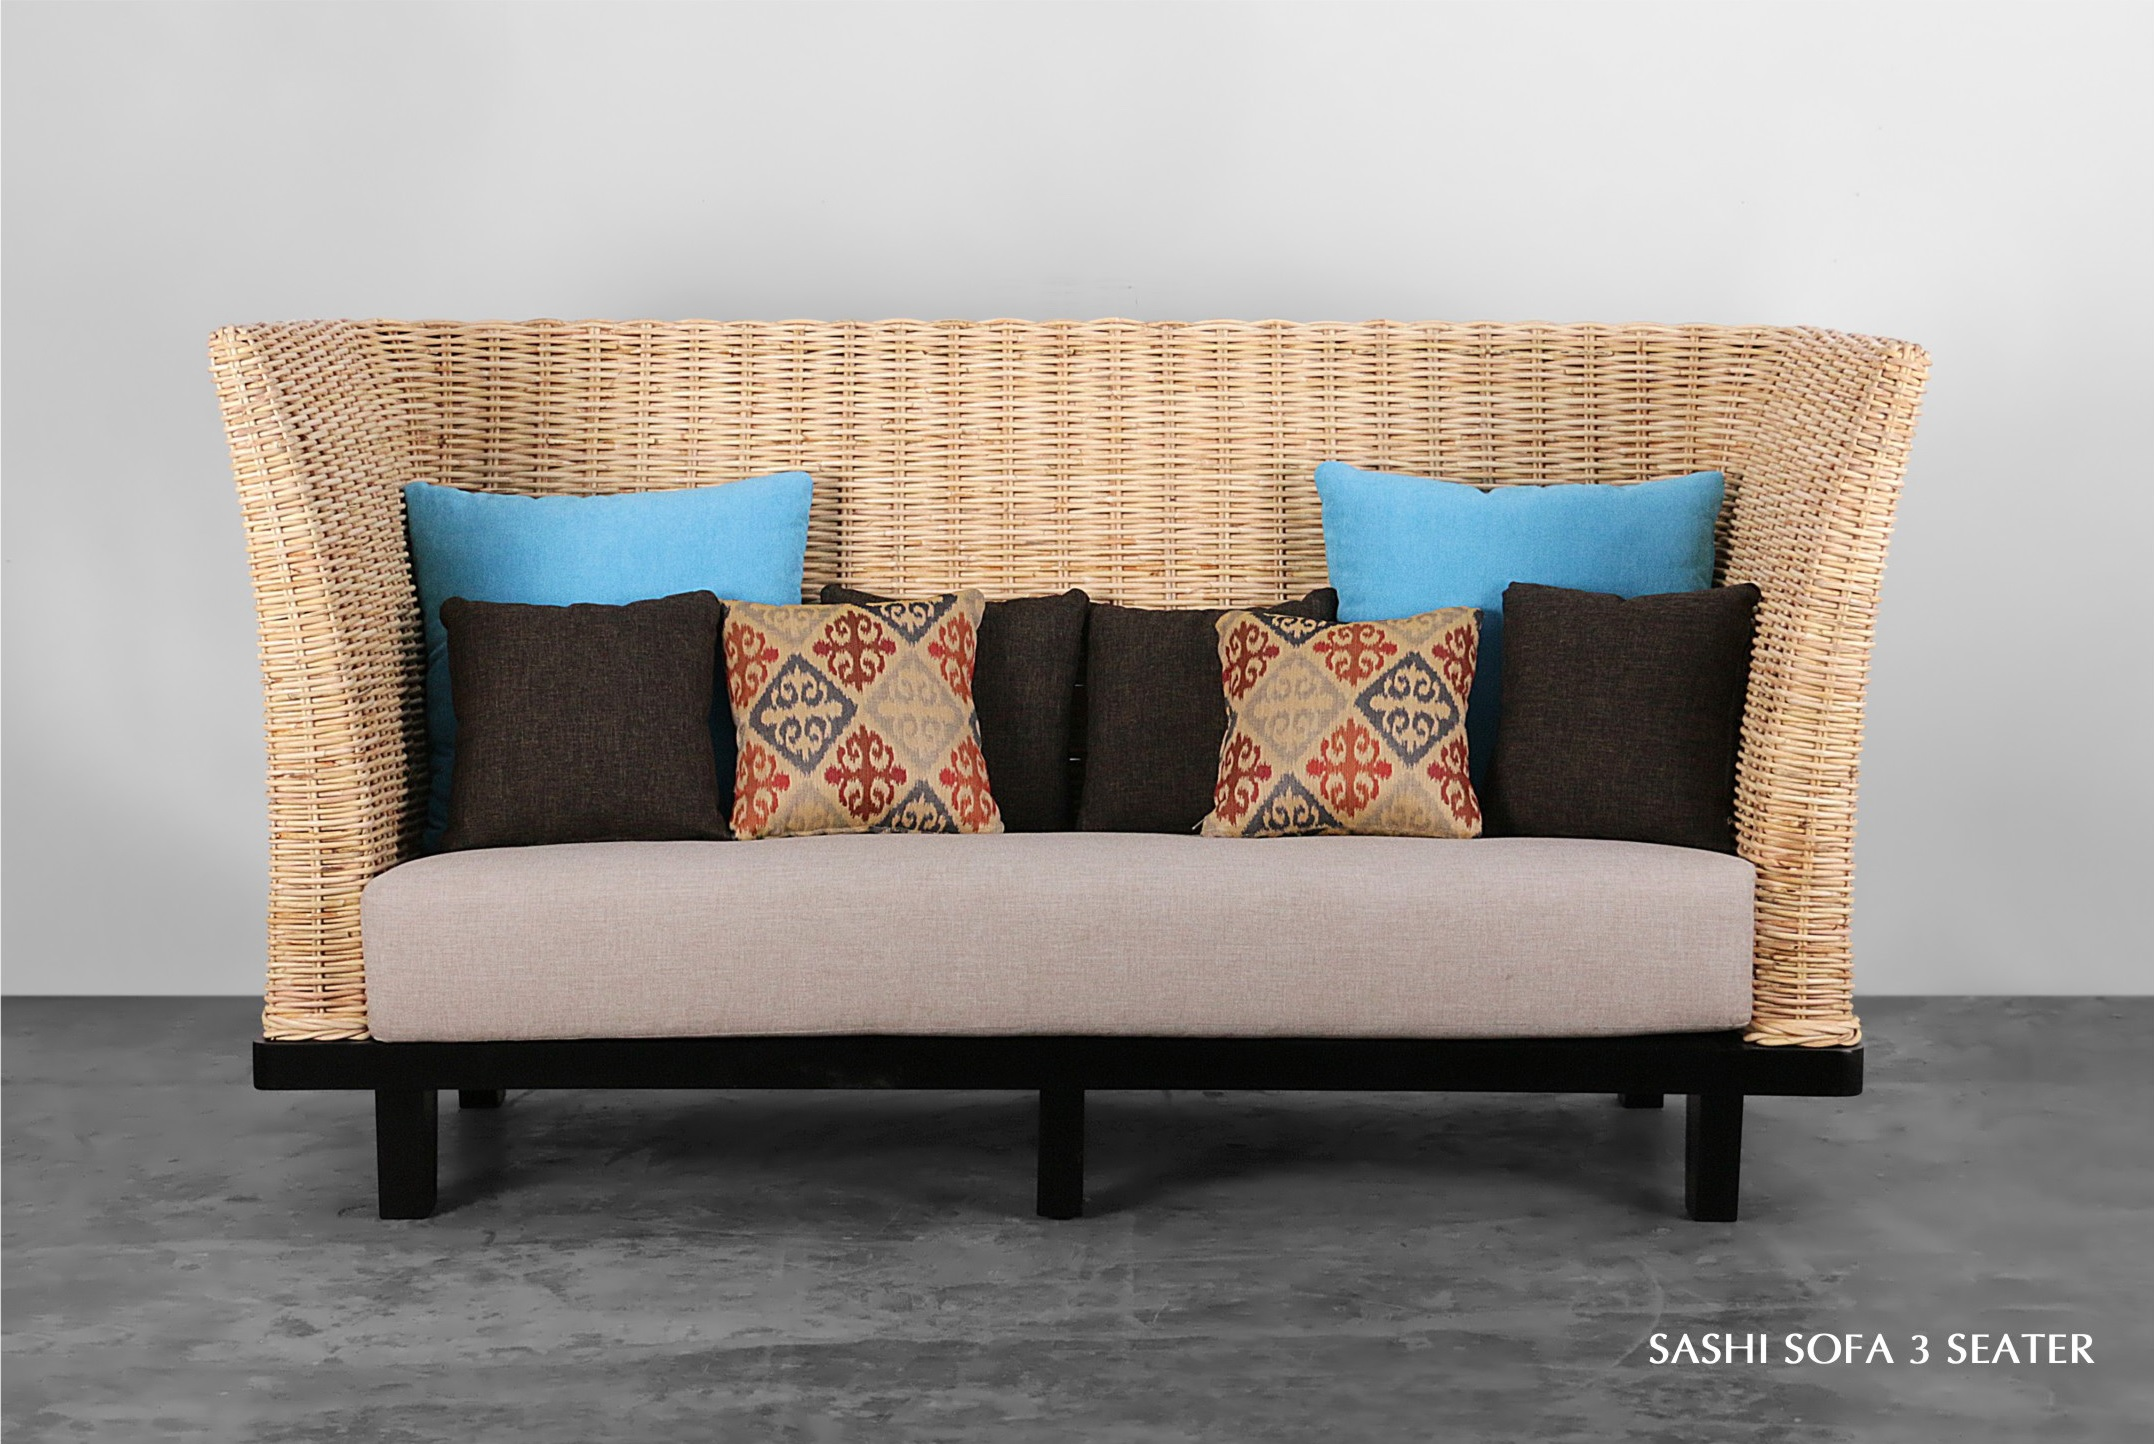 3 Seater Corner Rattan Sofa Sofas 1 Indonesia Rattan Rattan Furniture Wholesale